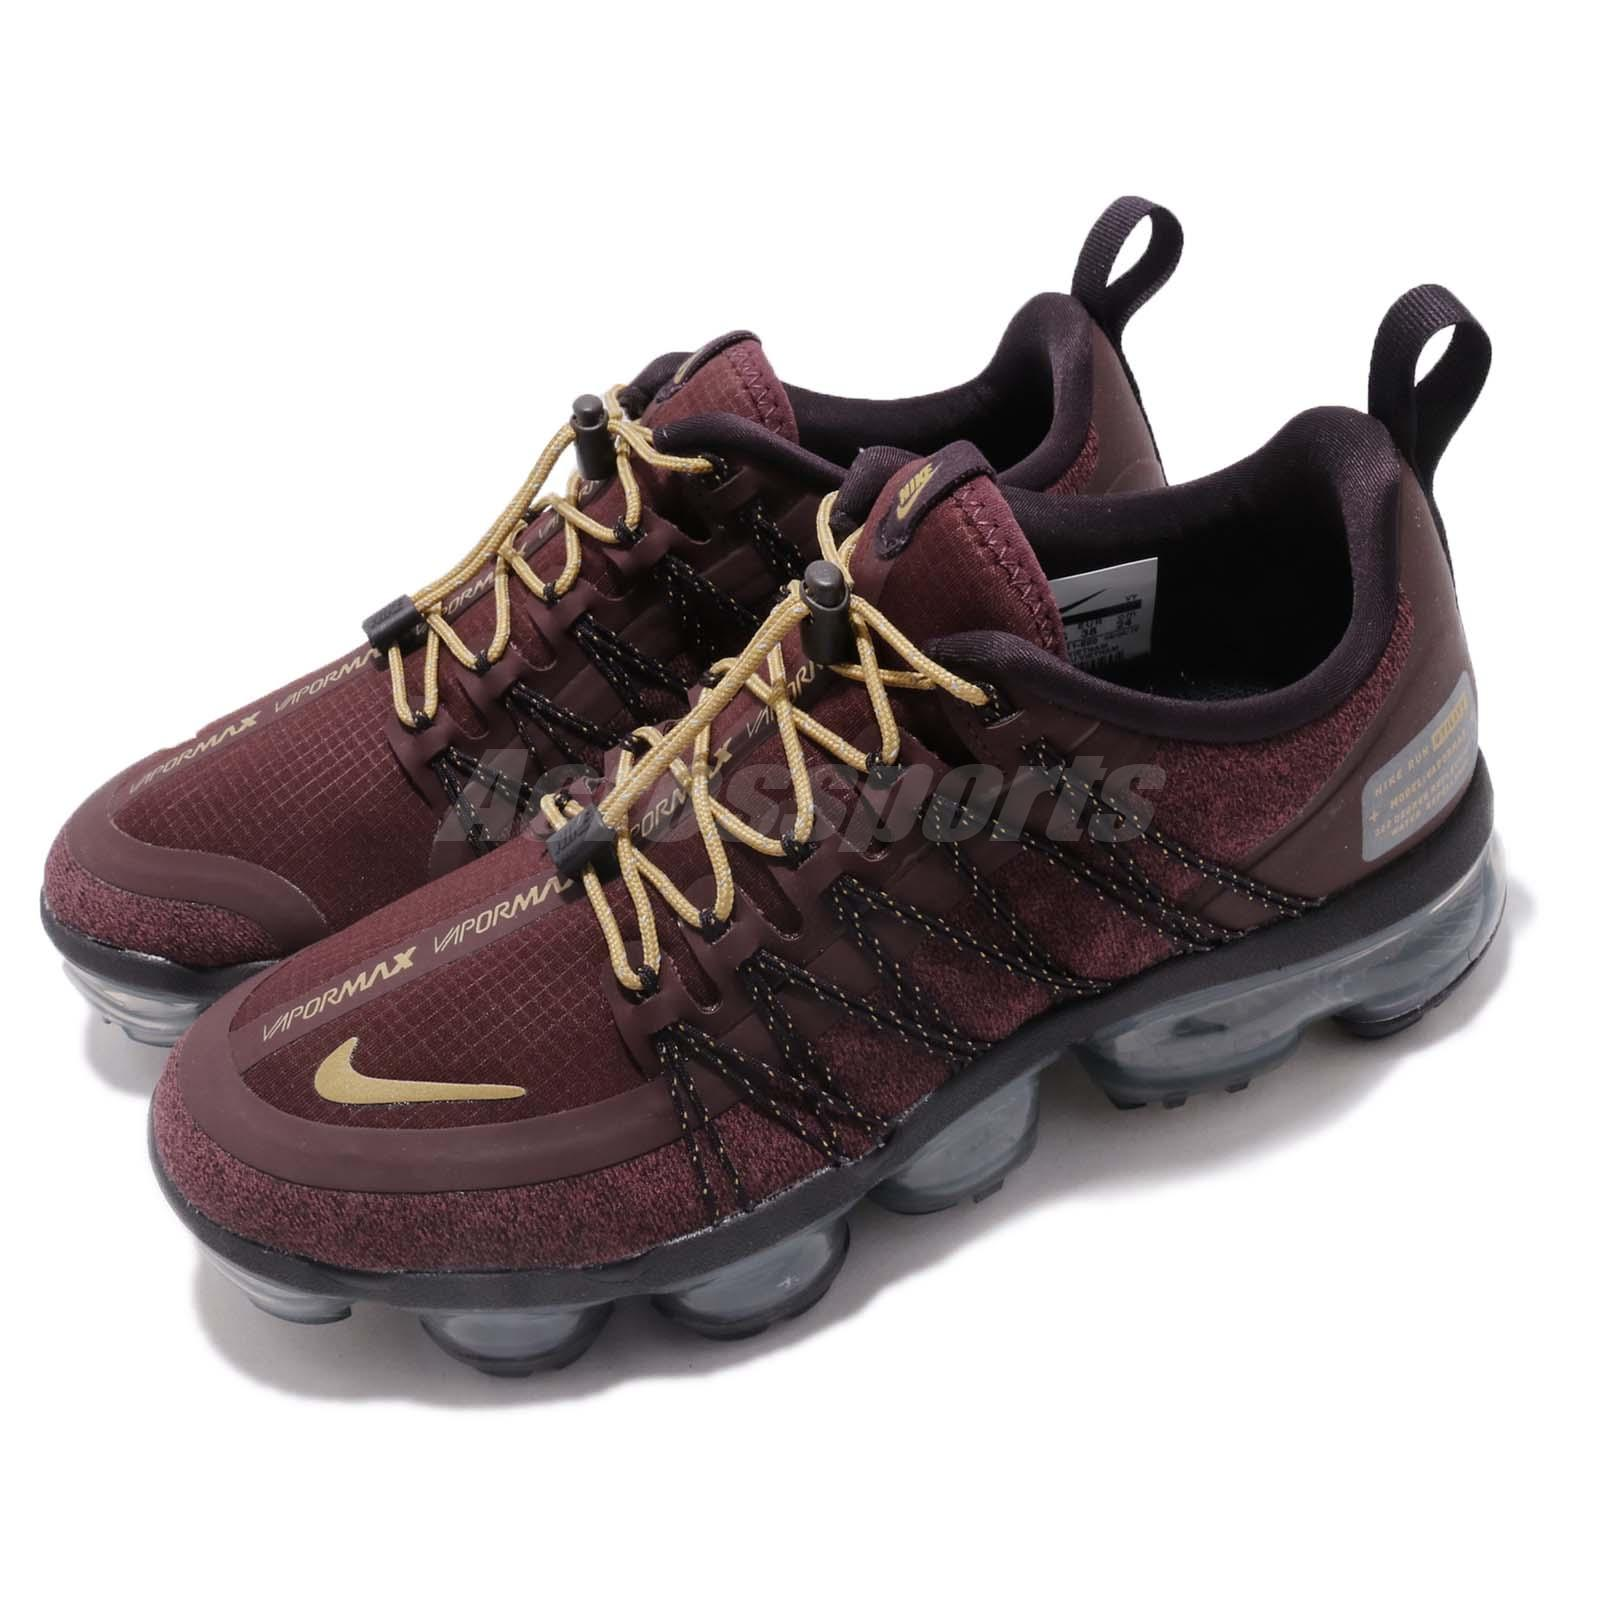 reputable site 49897 b6885 Details about Nike Wmns Air Vapormax Run Utility Burgundy Gold Women  Running Shoes AQ8811-600